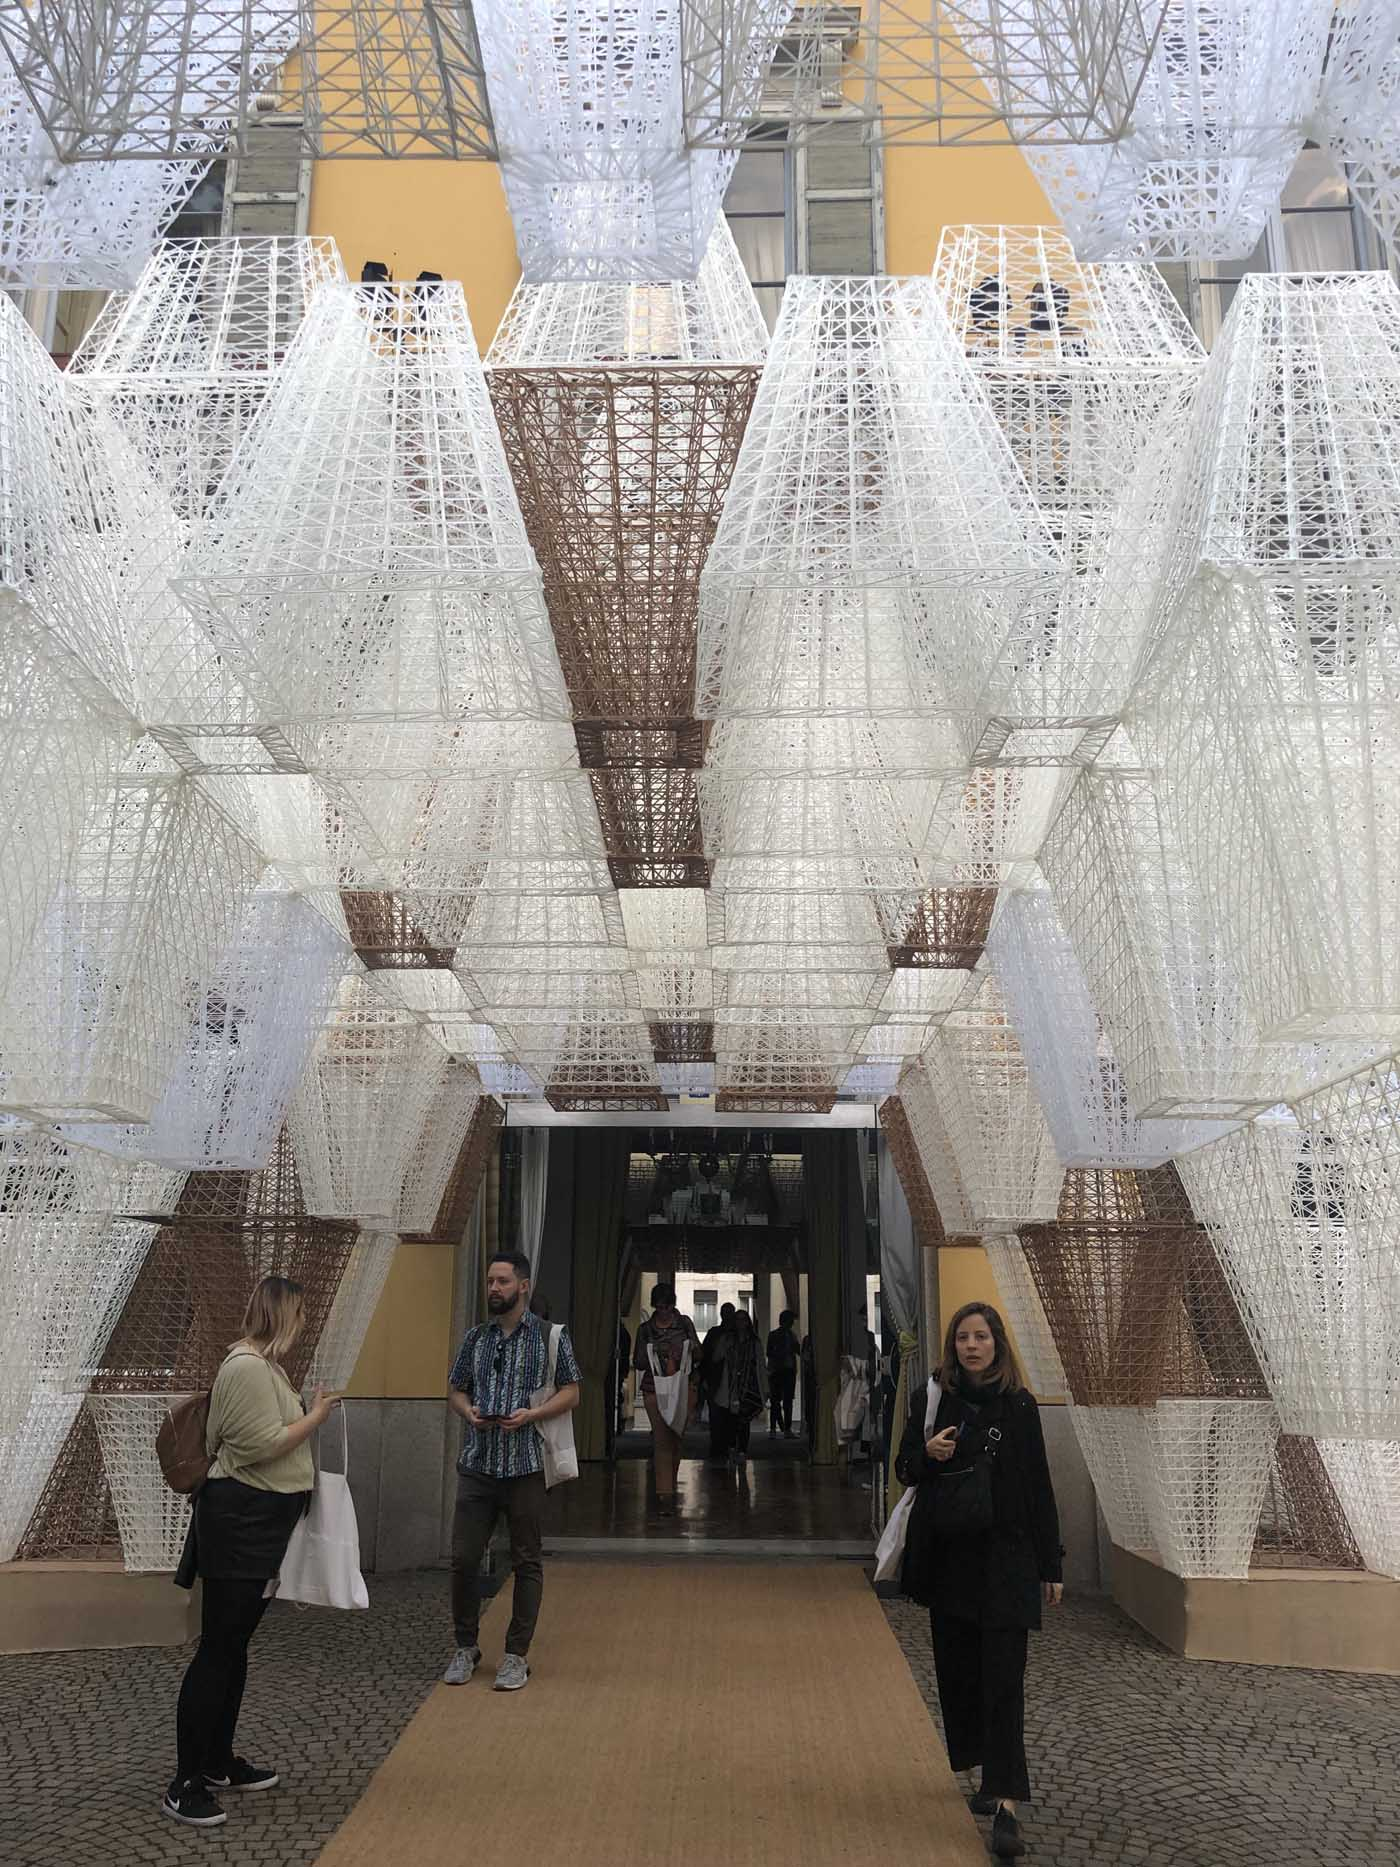 COS Pavilion reimagined in 3-D printing by French architect Mamou-Mani